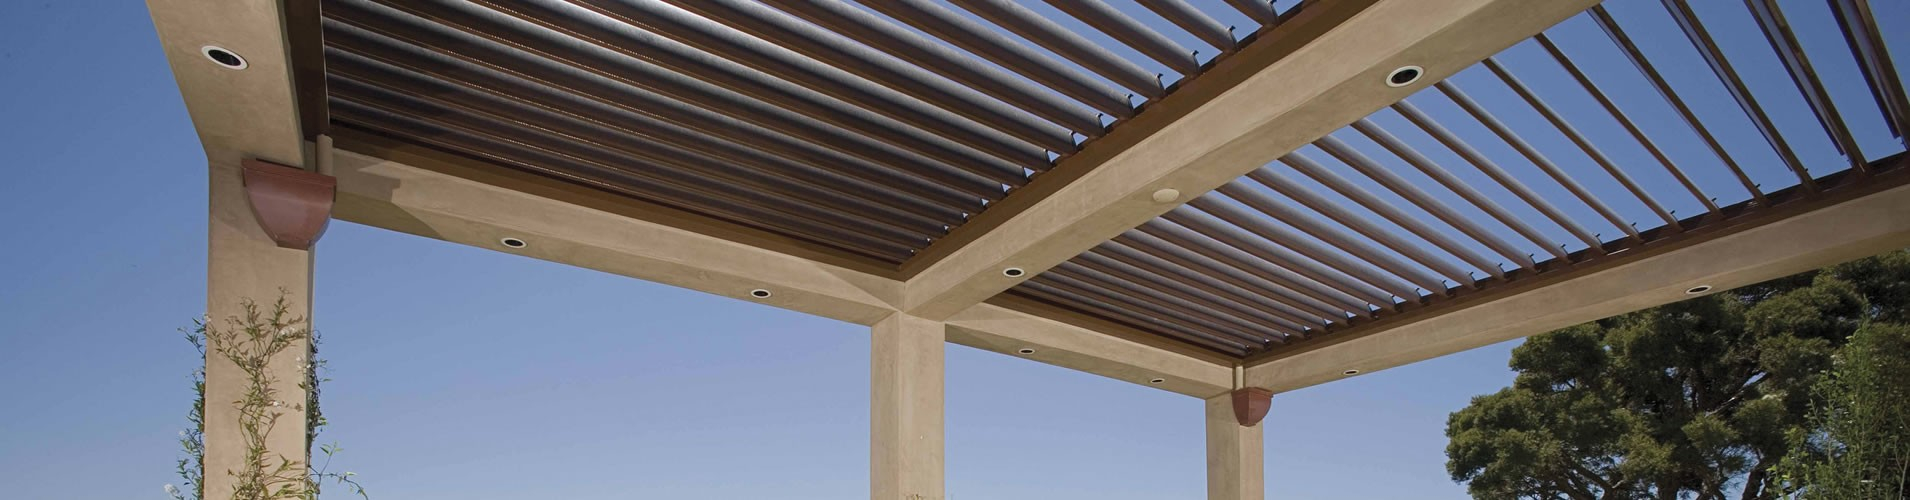 Dallas Patio Covers Louvered Roofs Texas Patio Systems within measurements 1910 X 500